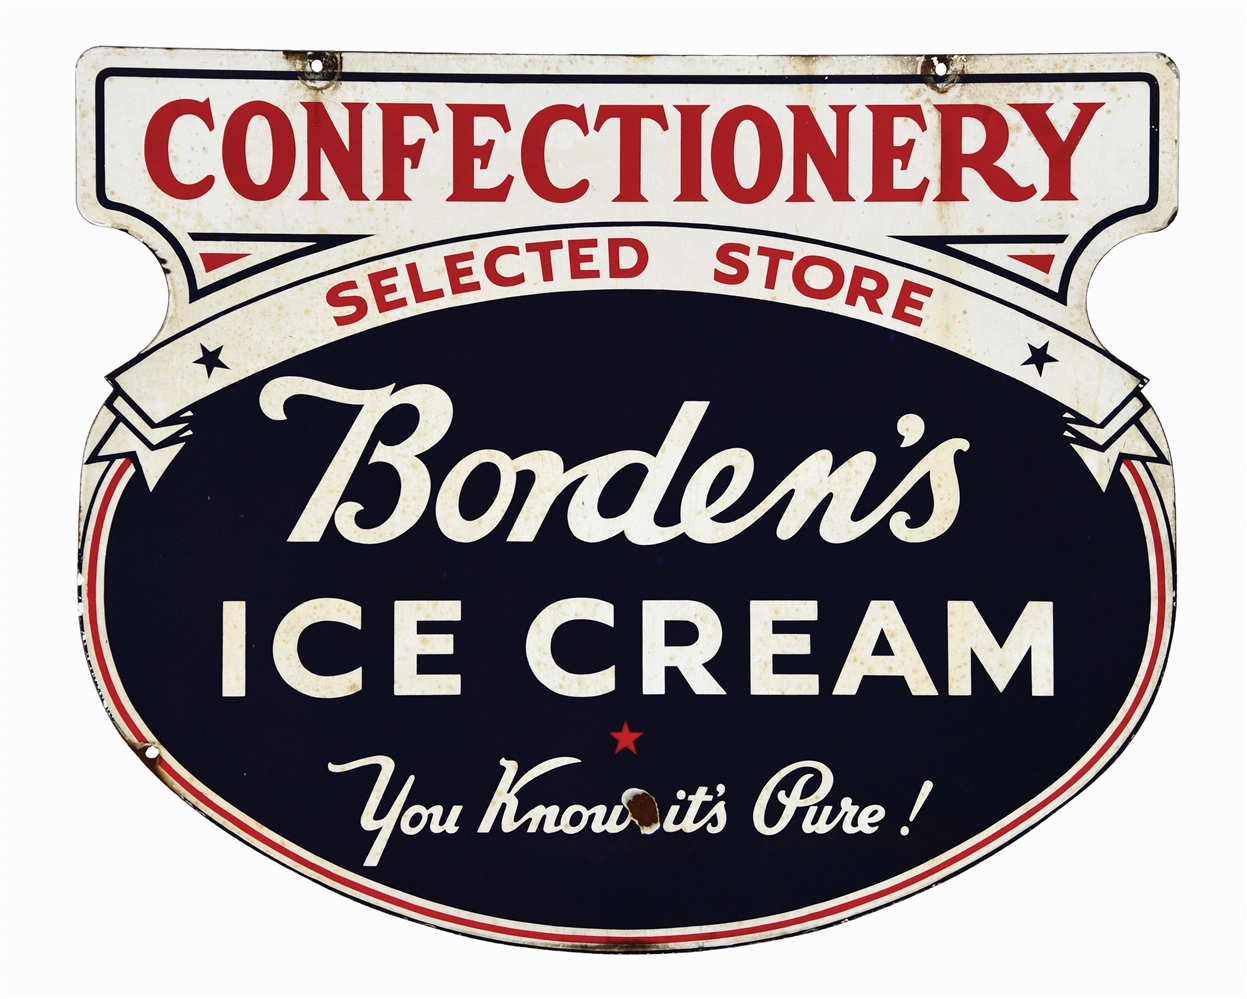 BORDENS ICE CREAM DIE CUT PORCELAIN SIGN W/ CONFECTIONERY PRIVILEGE PANEL.